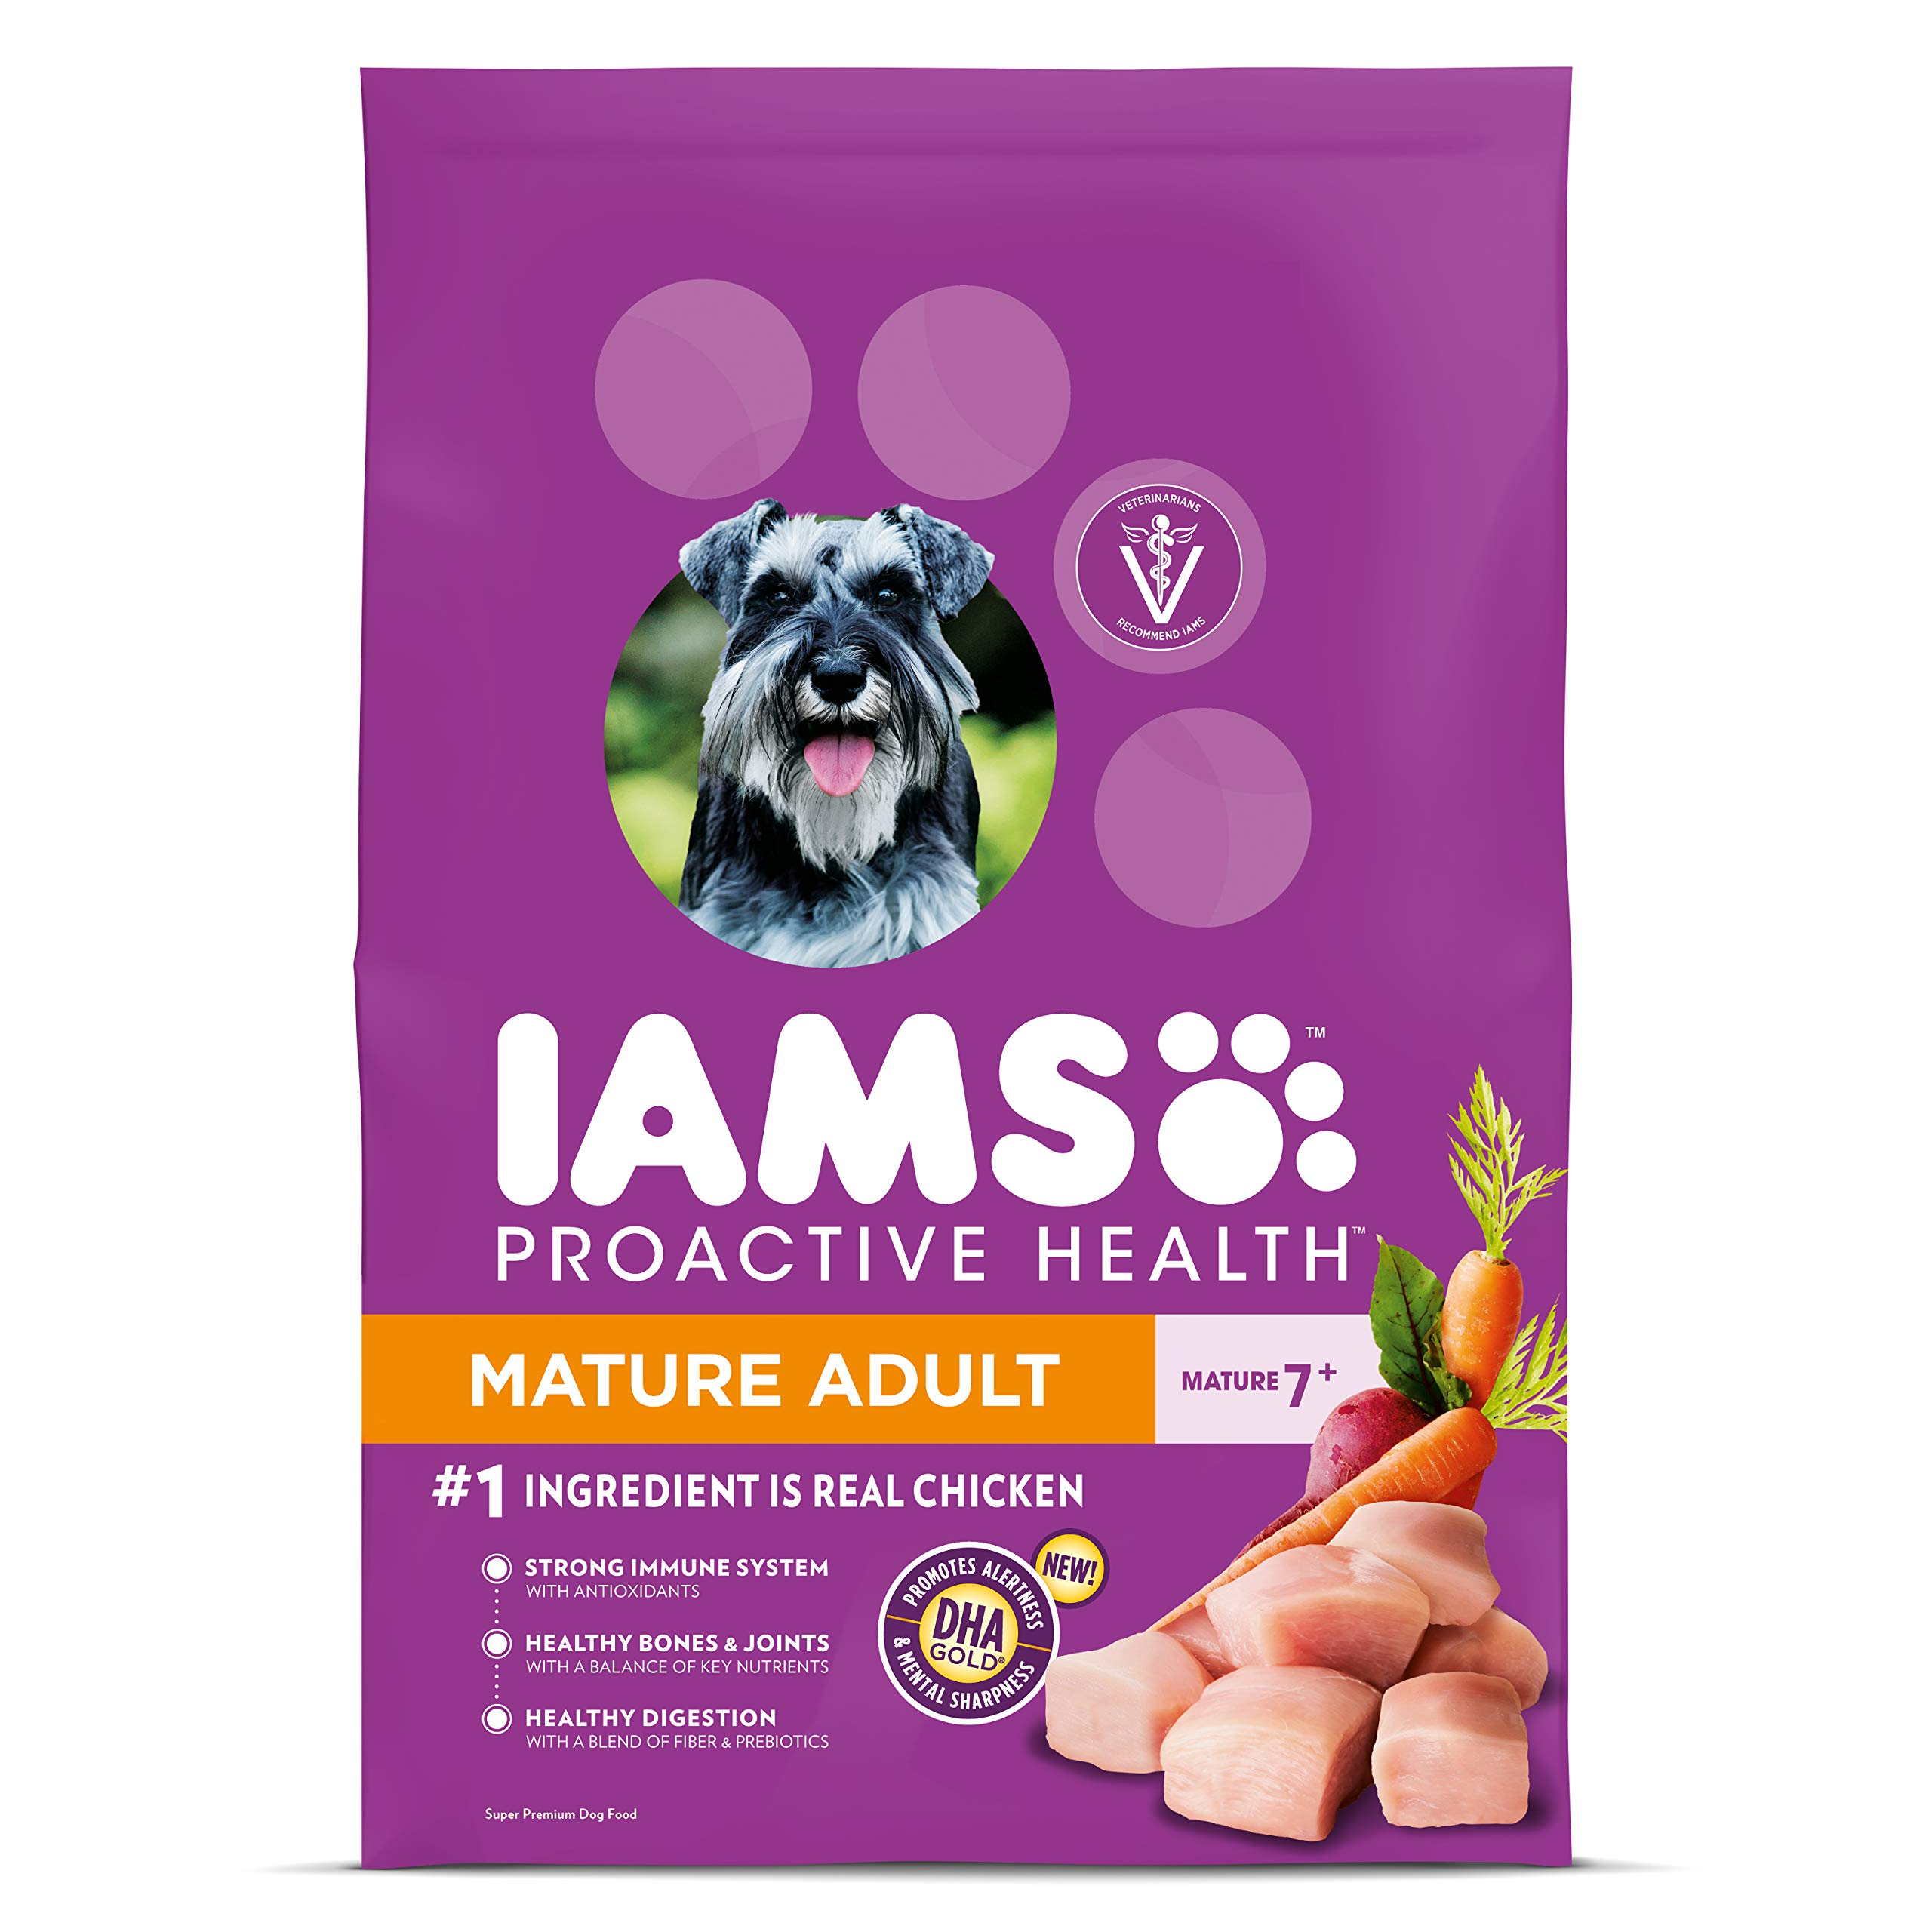 IAMS PROACTIVE HEALTH Mature Adult Dry Dog Food for Senior Dogs with Real Chicken, 29.1 lb. Bag by Iams